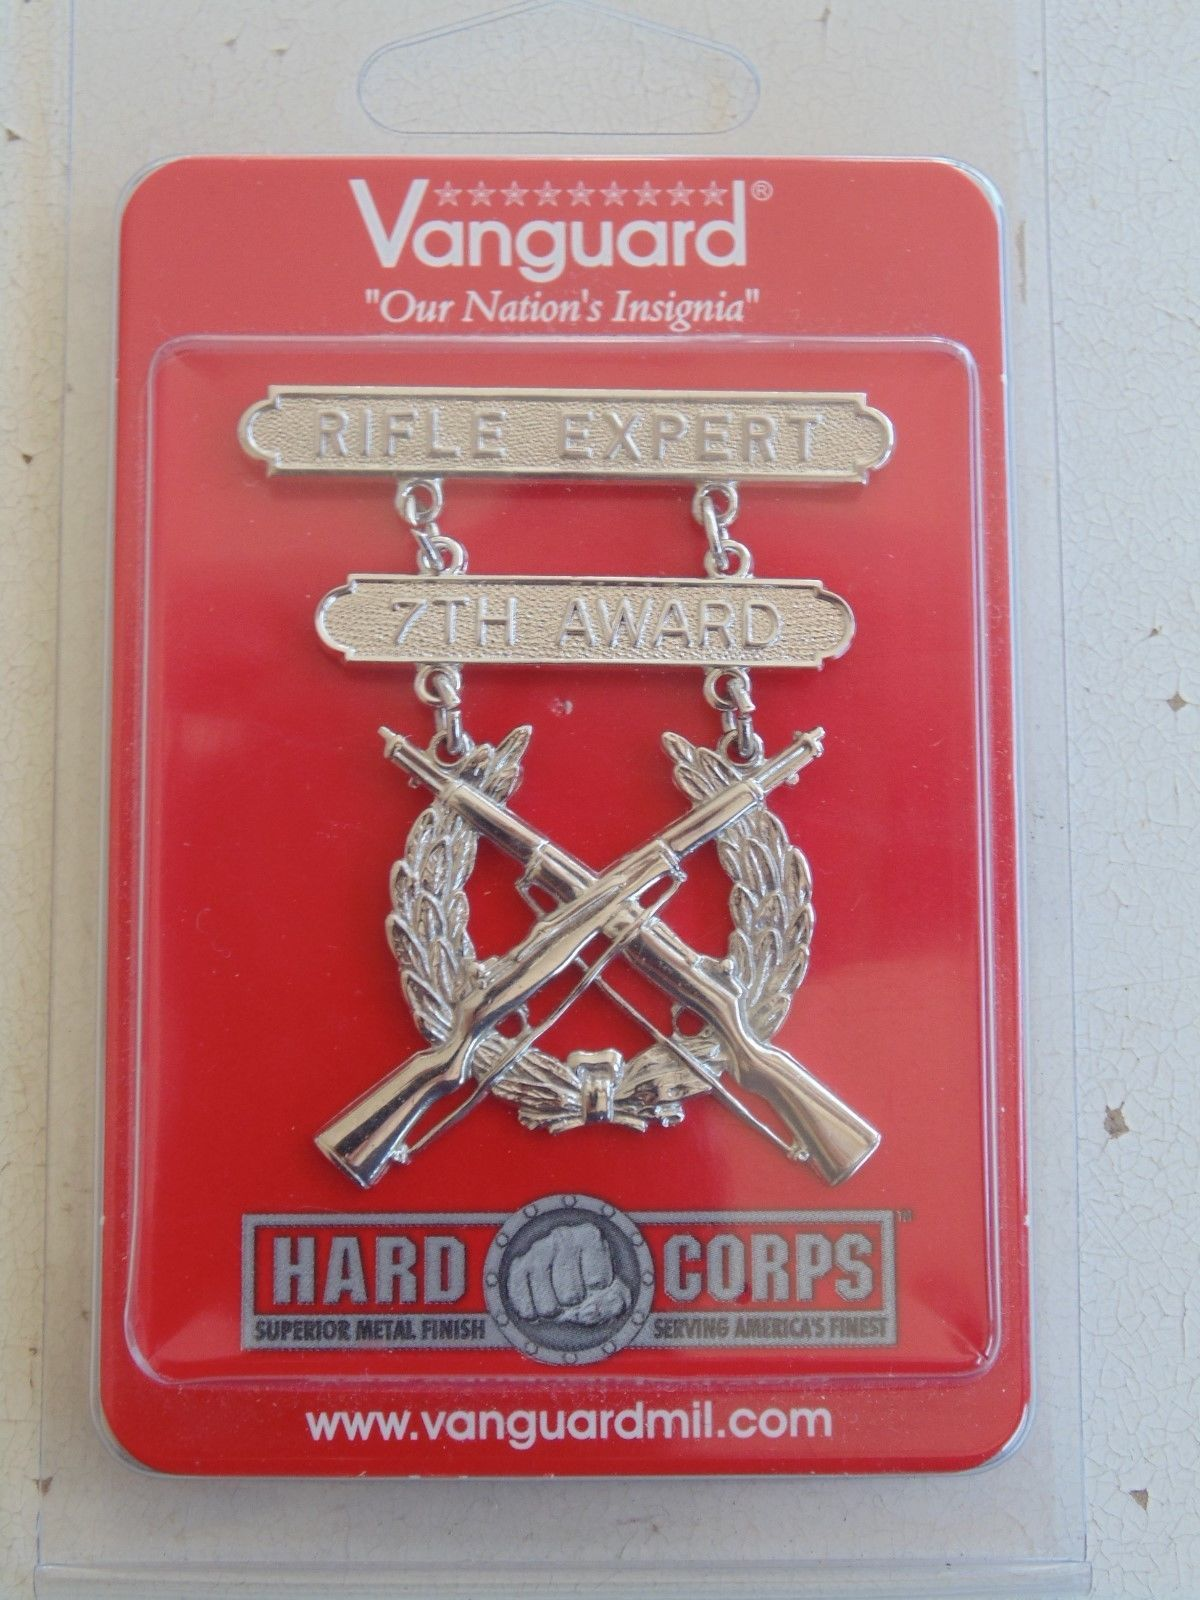 Primary image for USMC US MARINE CORPS ALL RANKS RIFLE EXPERT SILVER BREAST BADGE 7TH AWARD NIP